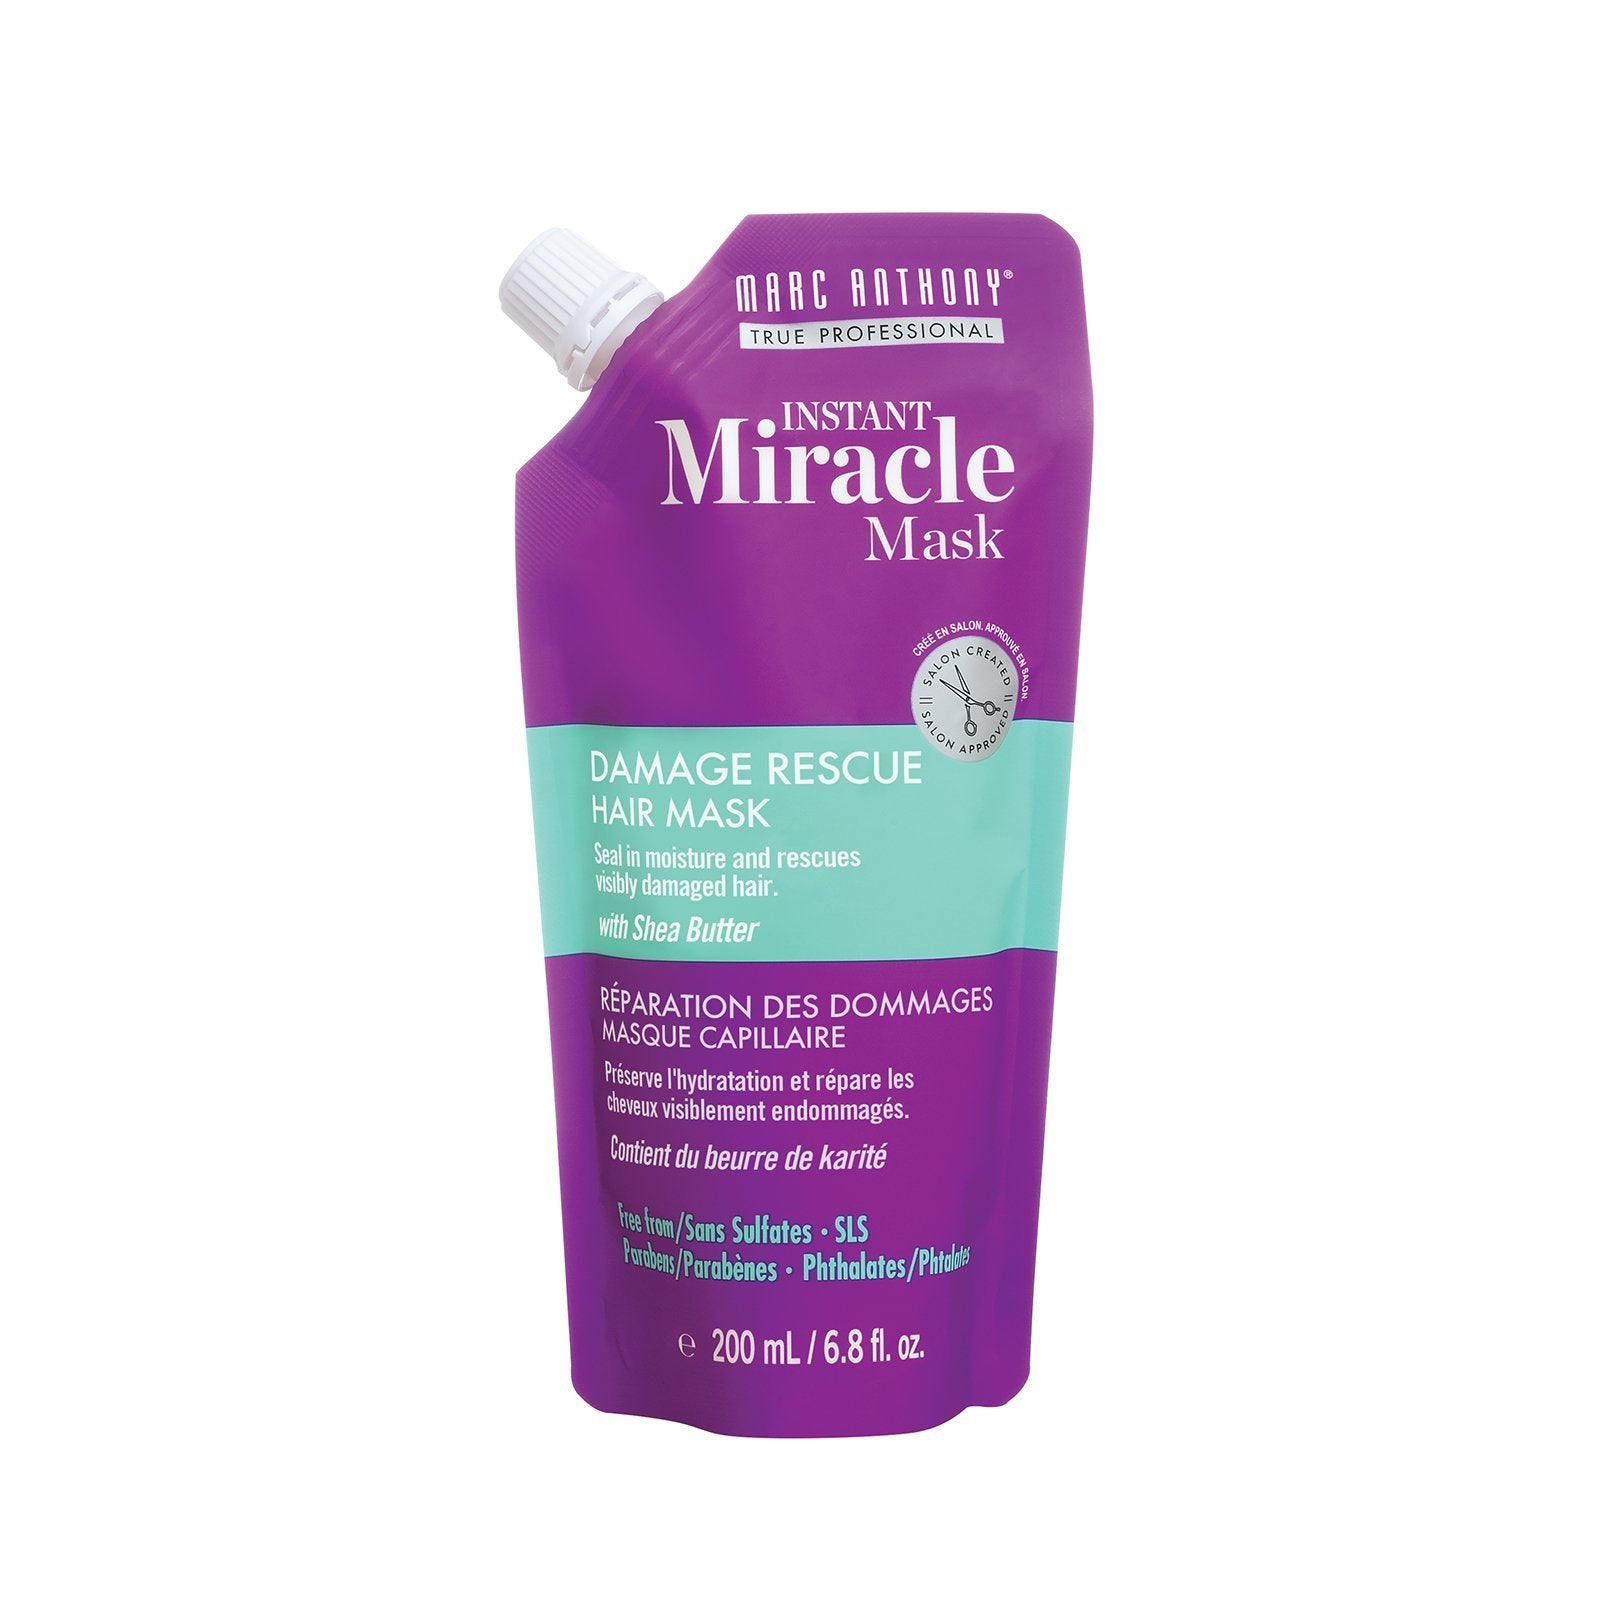 Instant Miracle Mask Damage Rescue Hair Mask 200ml